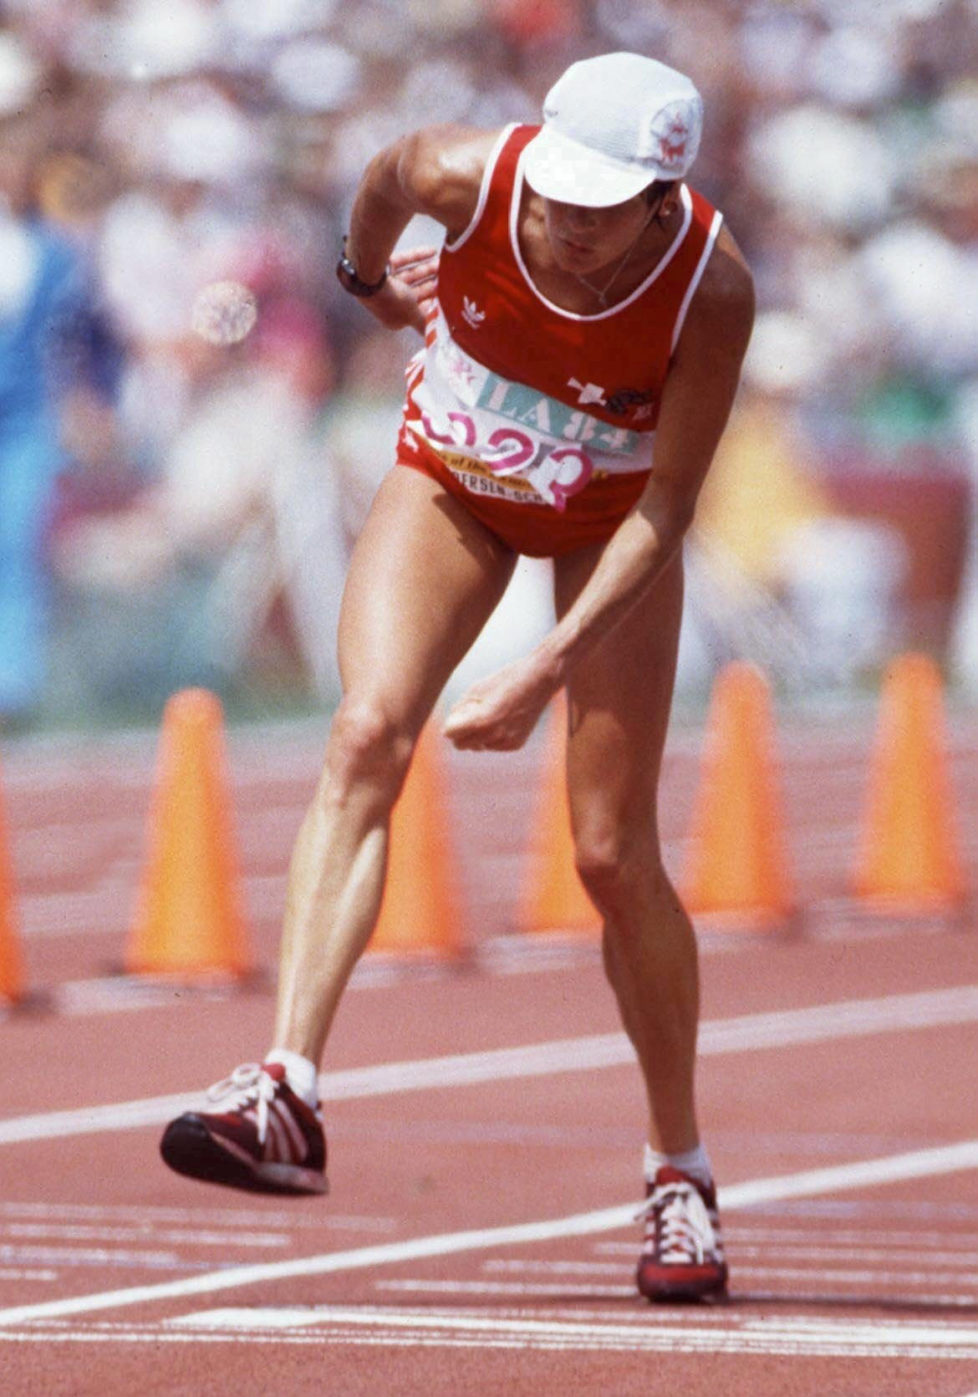 LOS ANGELES, UNITED STATES - AUGUST 20: LOS ANGELES 1984; MARATHON: Gaby ANDERSEN - SCHIESS/SUI (Photo by Bongarts/Getty Images)